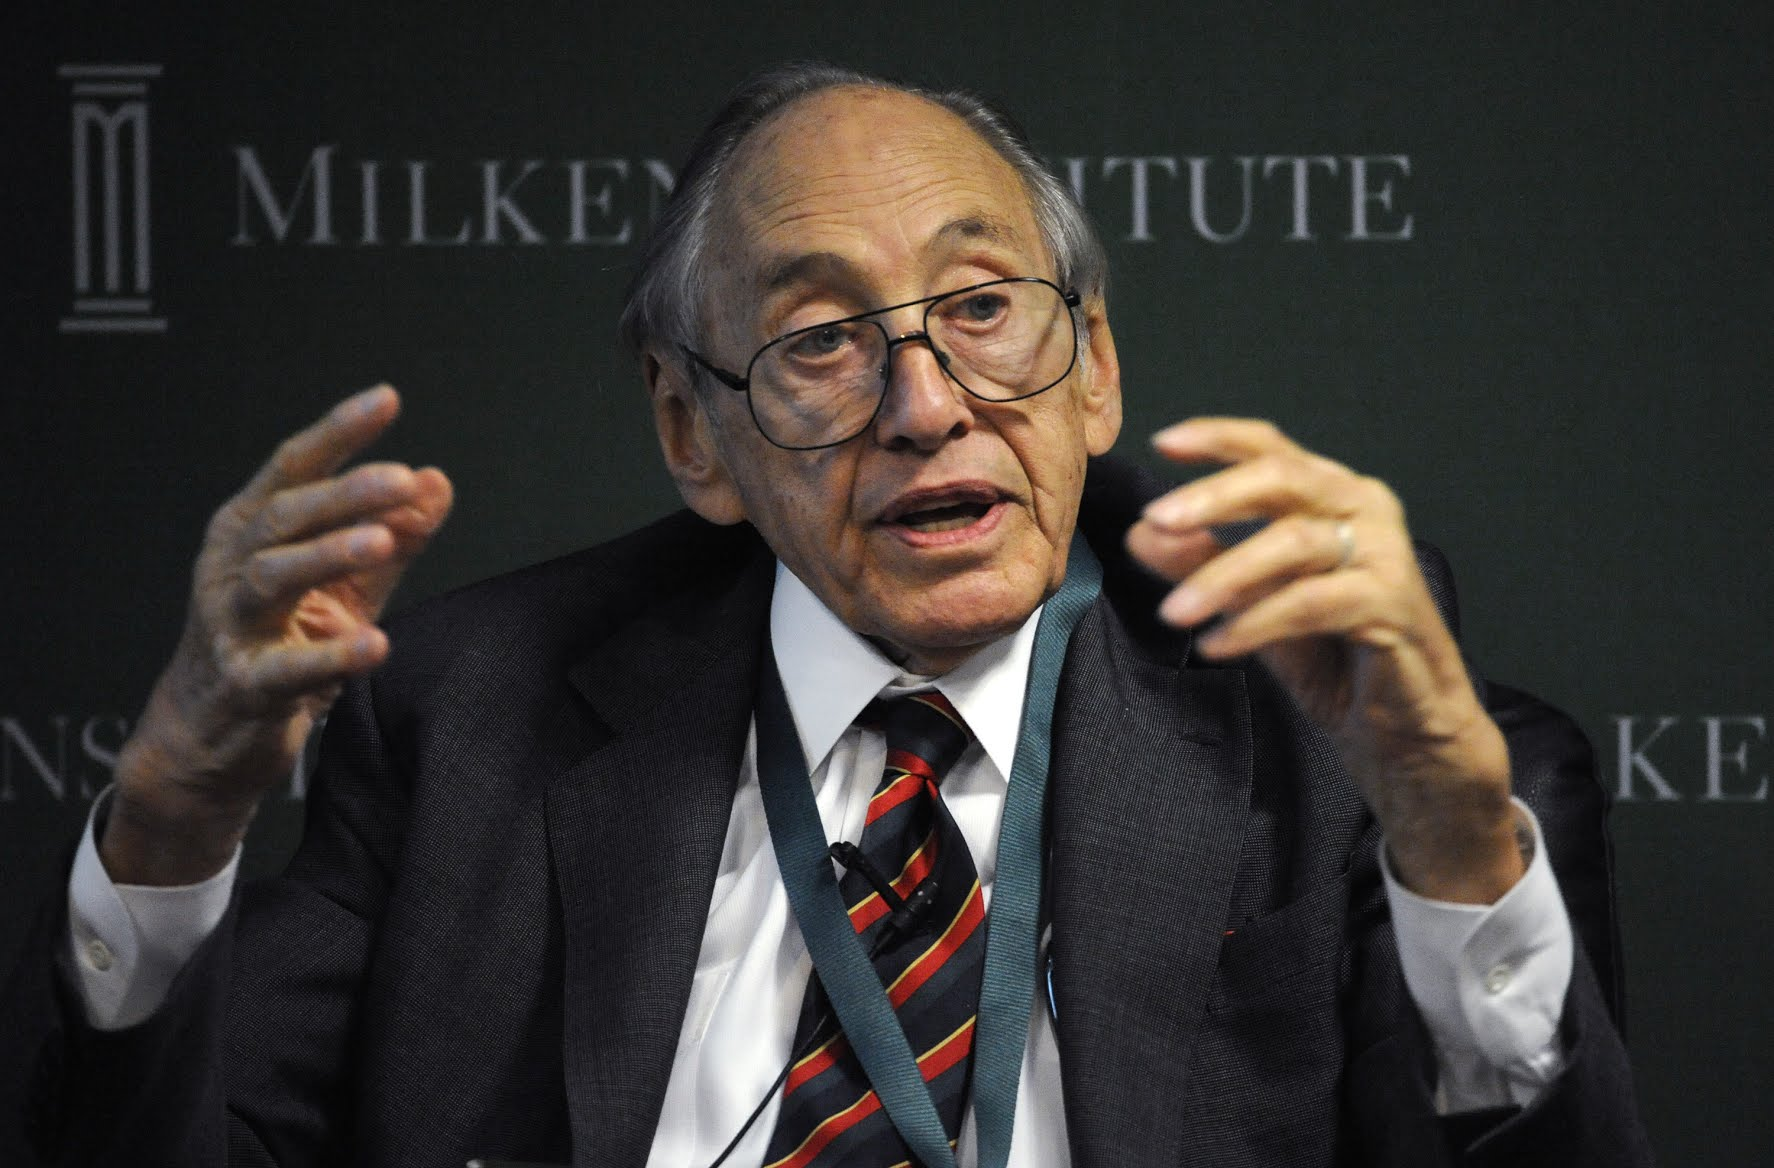 Alvin Toffler's 1970 bestseller Future Shock anticipated the rise of the internet